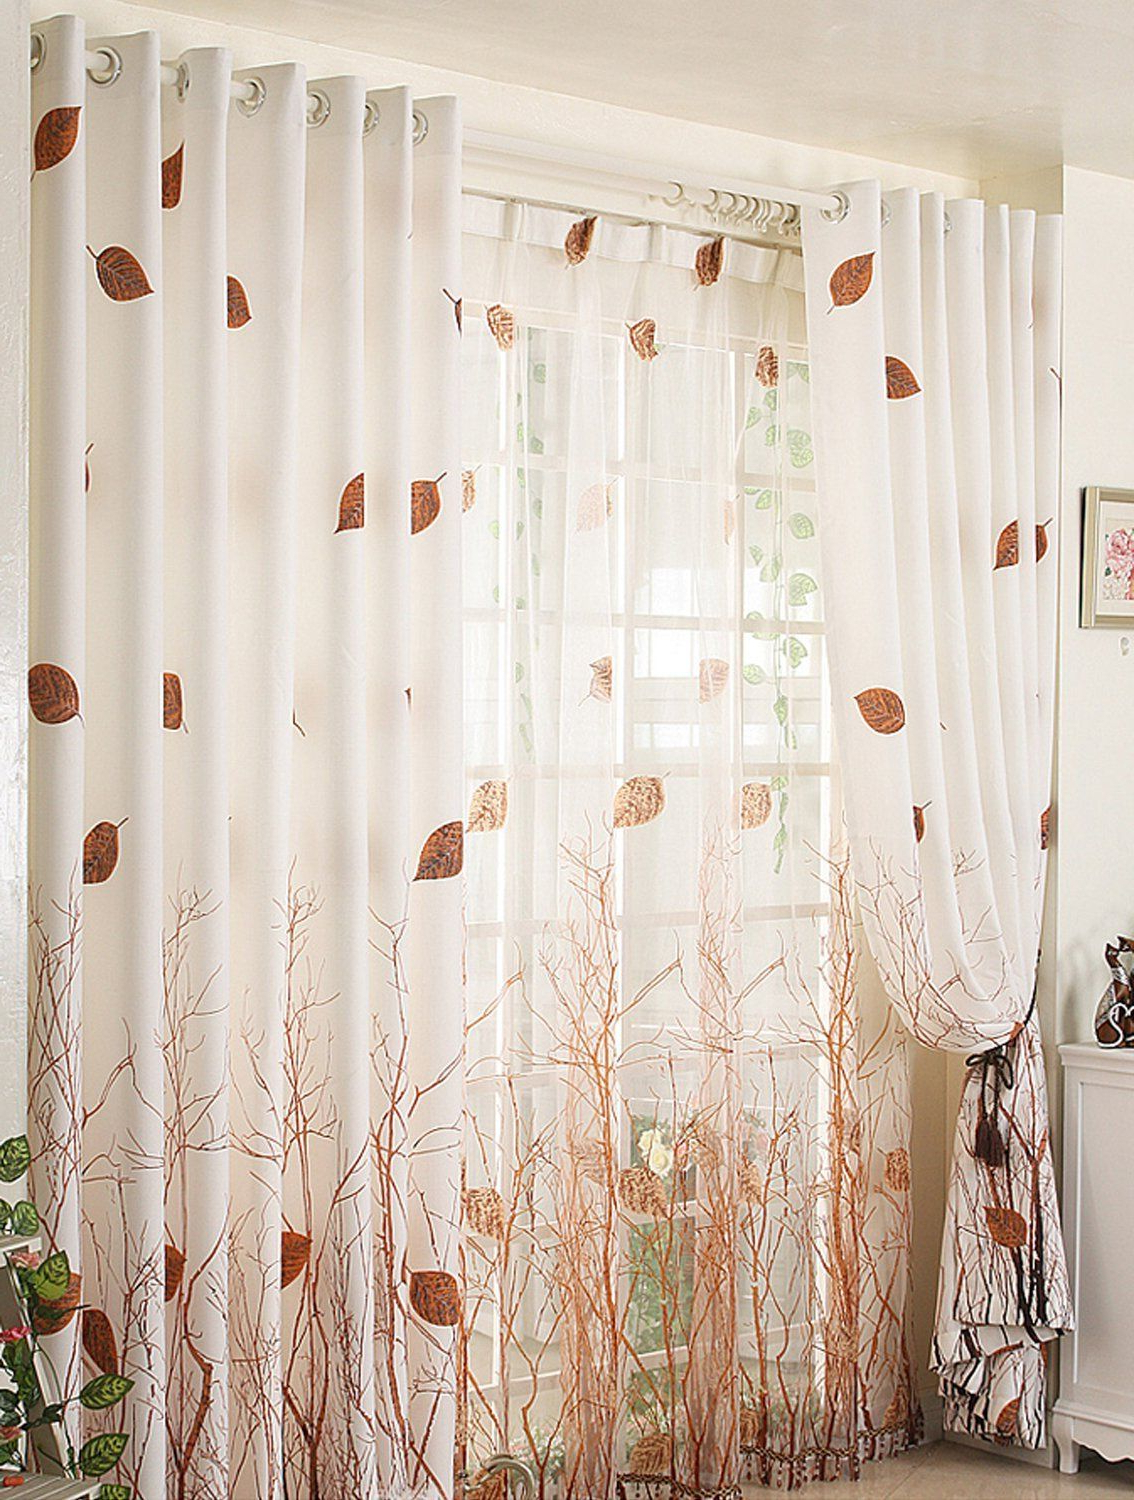 Preferred Montpellier Striped Linen Sheer Curtains In Amazon: Elleweideco Modern Autumn Leaf Tree Branch Sheer (View 18 of 20)